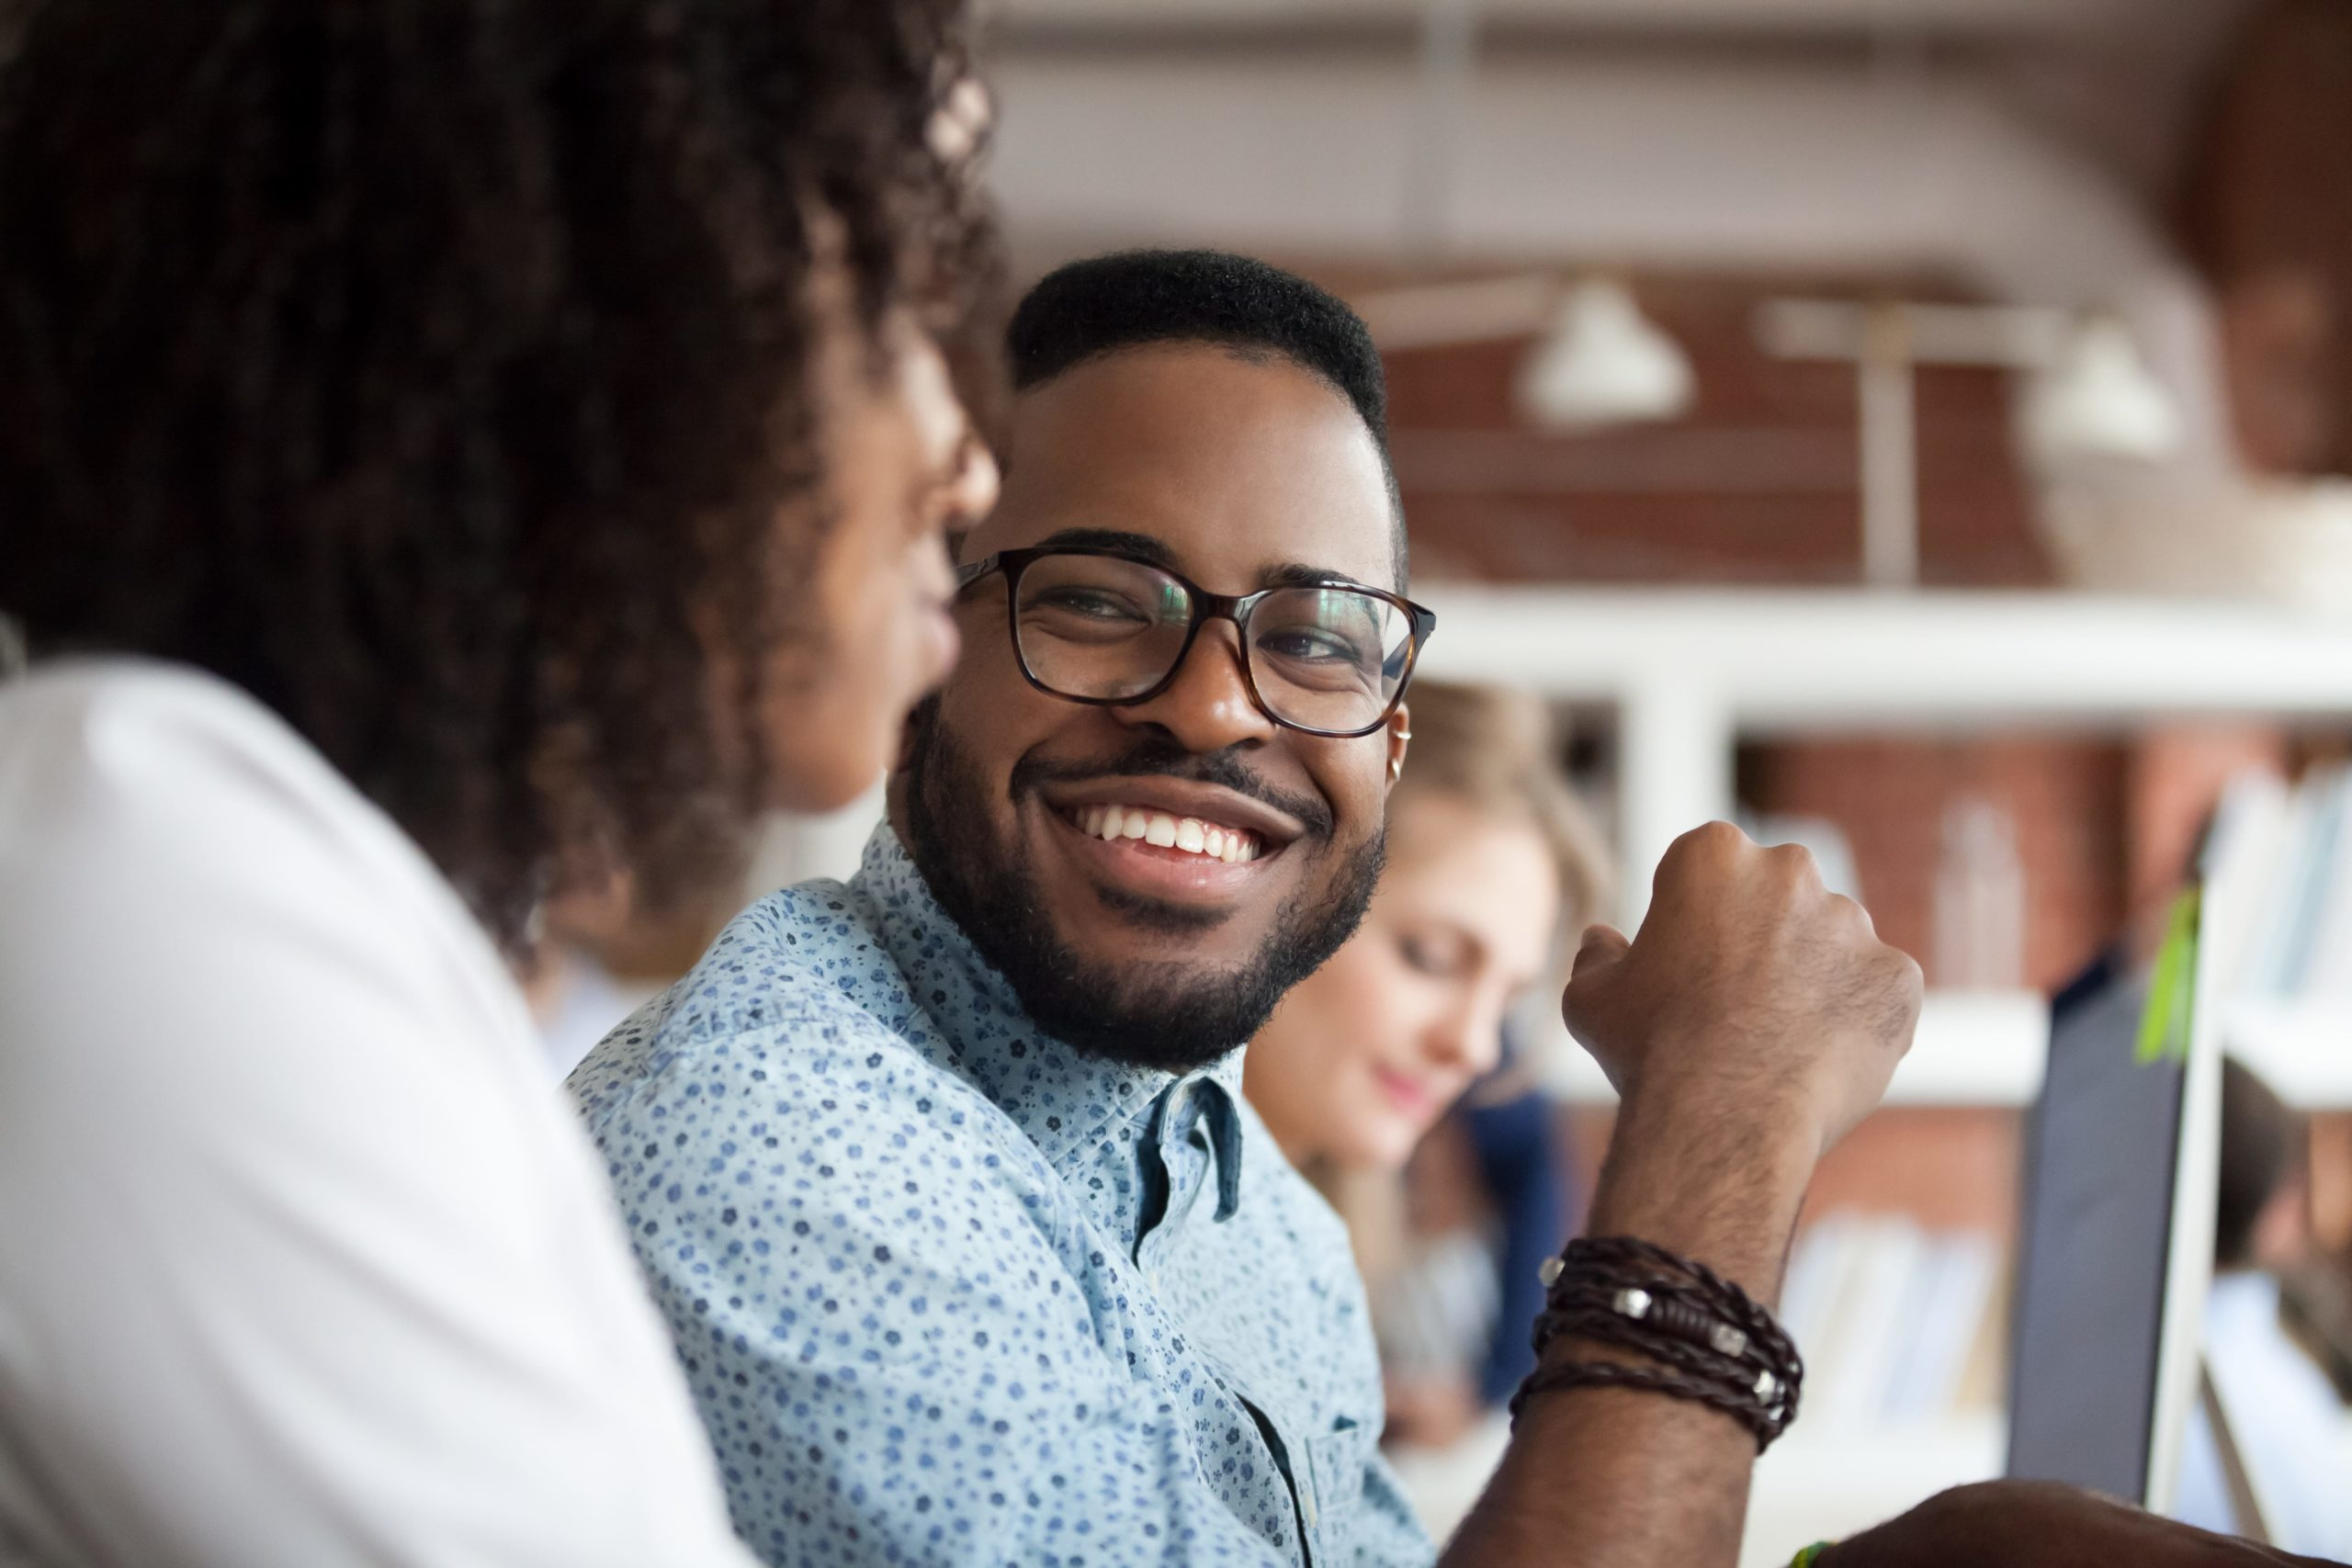 man with glasses smiling at colleague